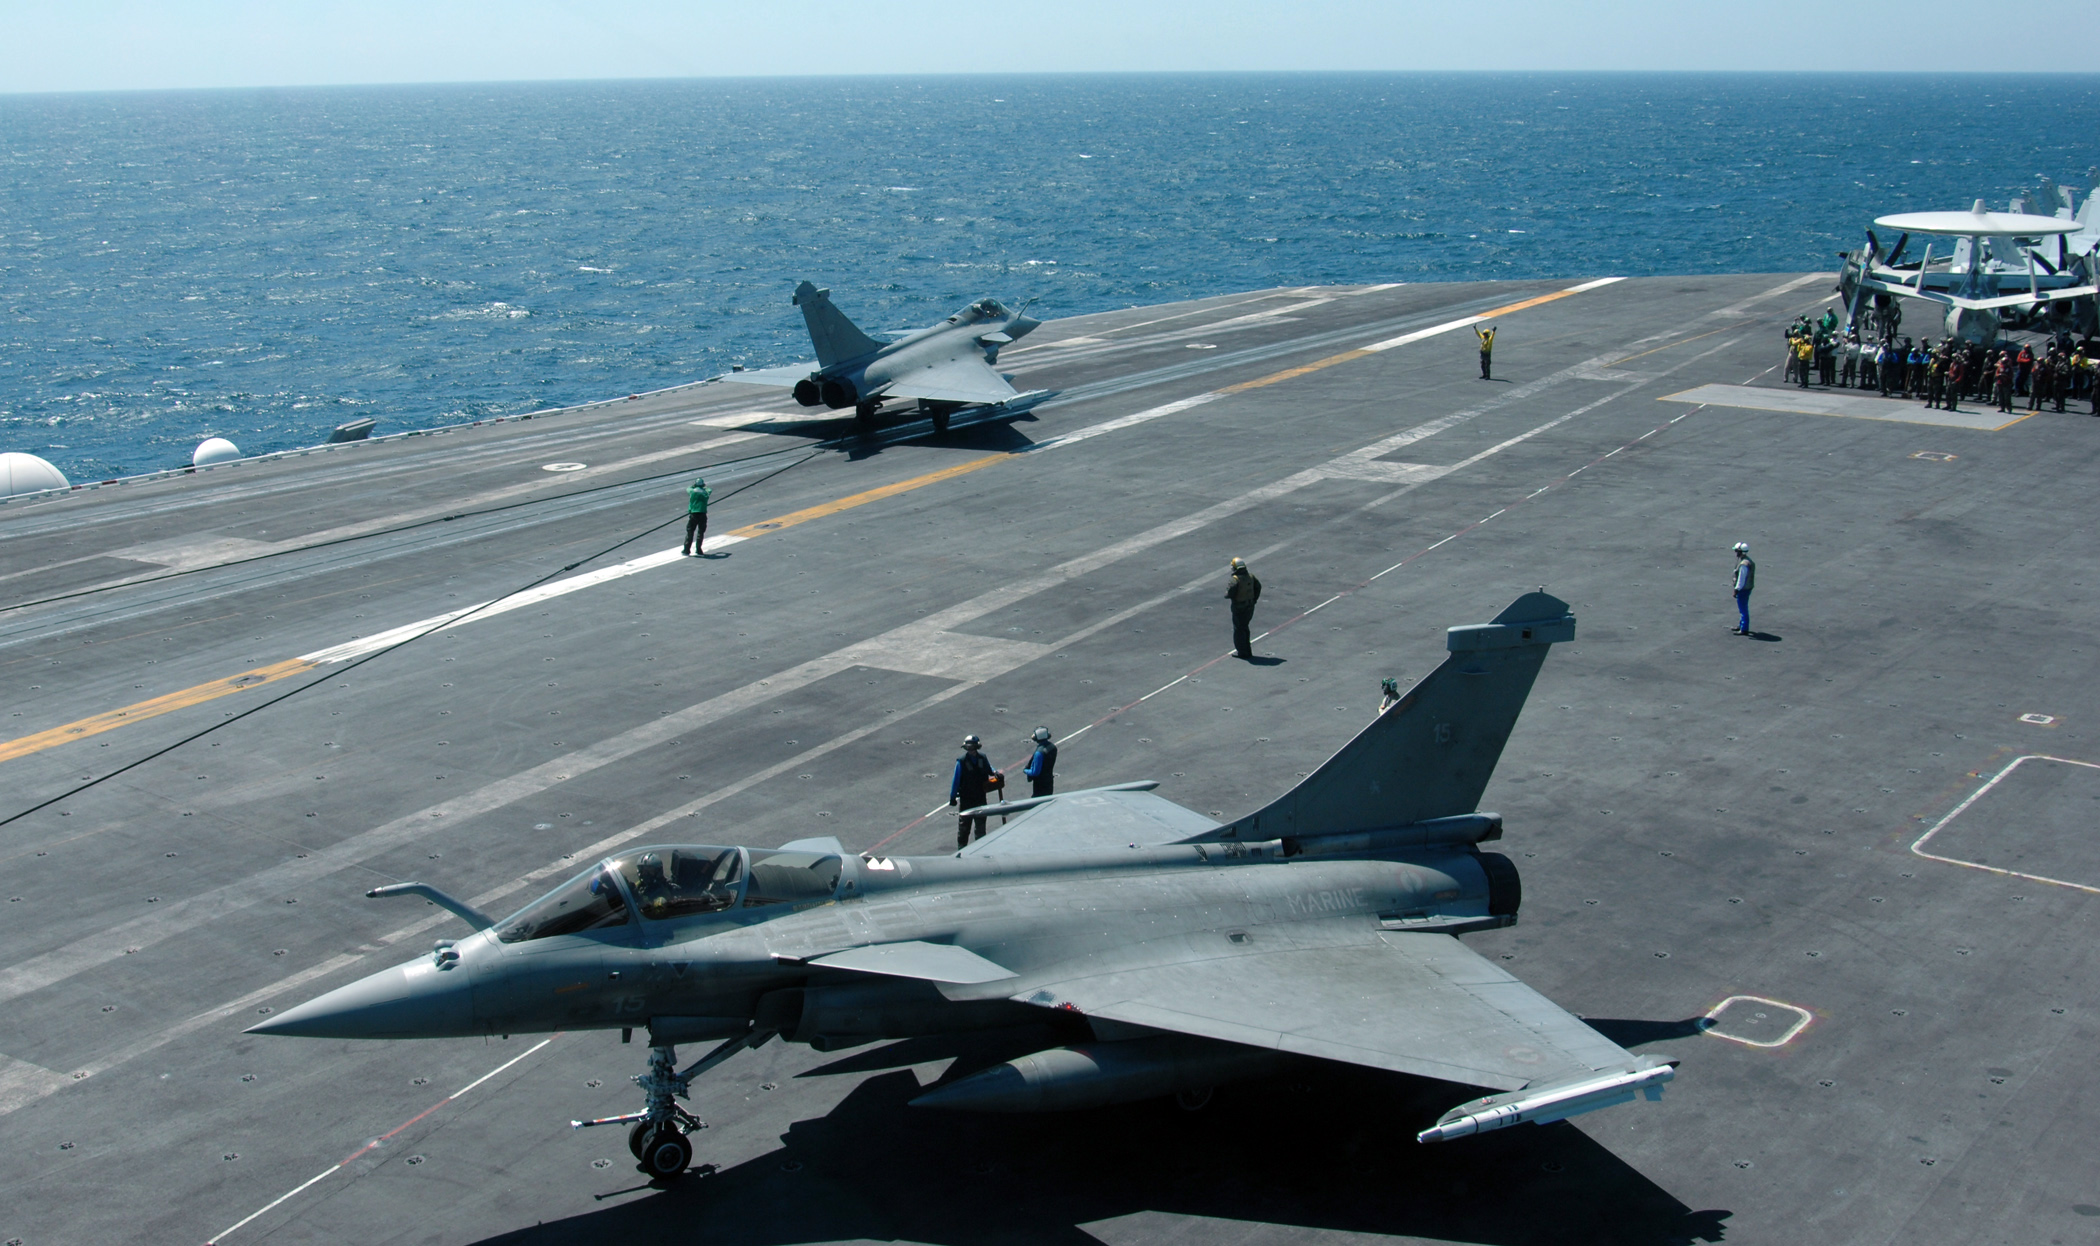 http://upload.wikimedia.org/wikipedia/commons/4/44/Rafales_aboard_USS_Harry_Truman.jpg